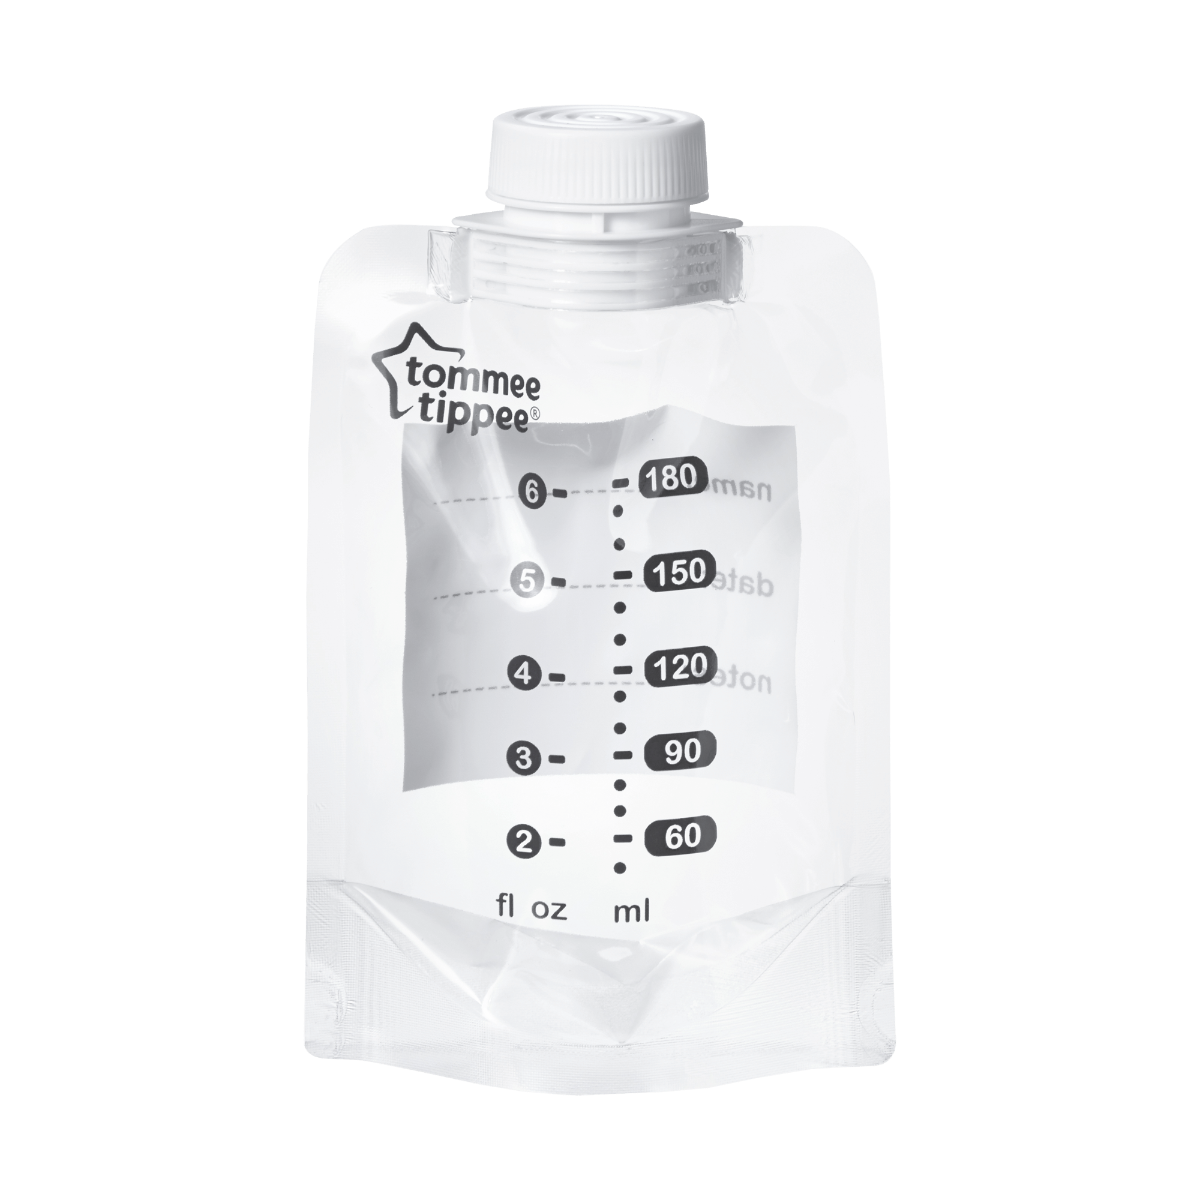 Tommee Tippee Express & Go Electric Breast Pump Kit